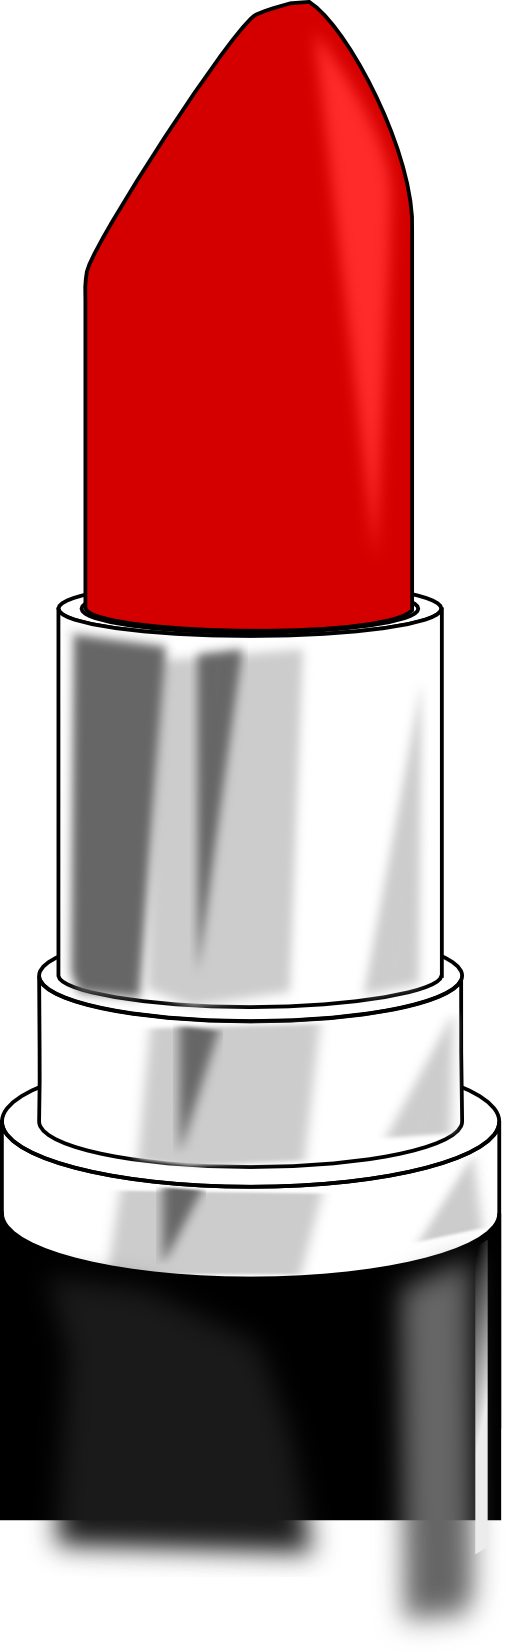 Red lipstick clipart.